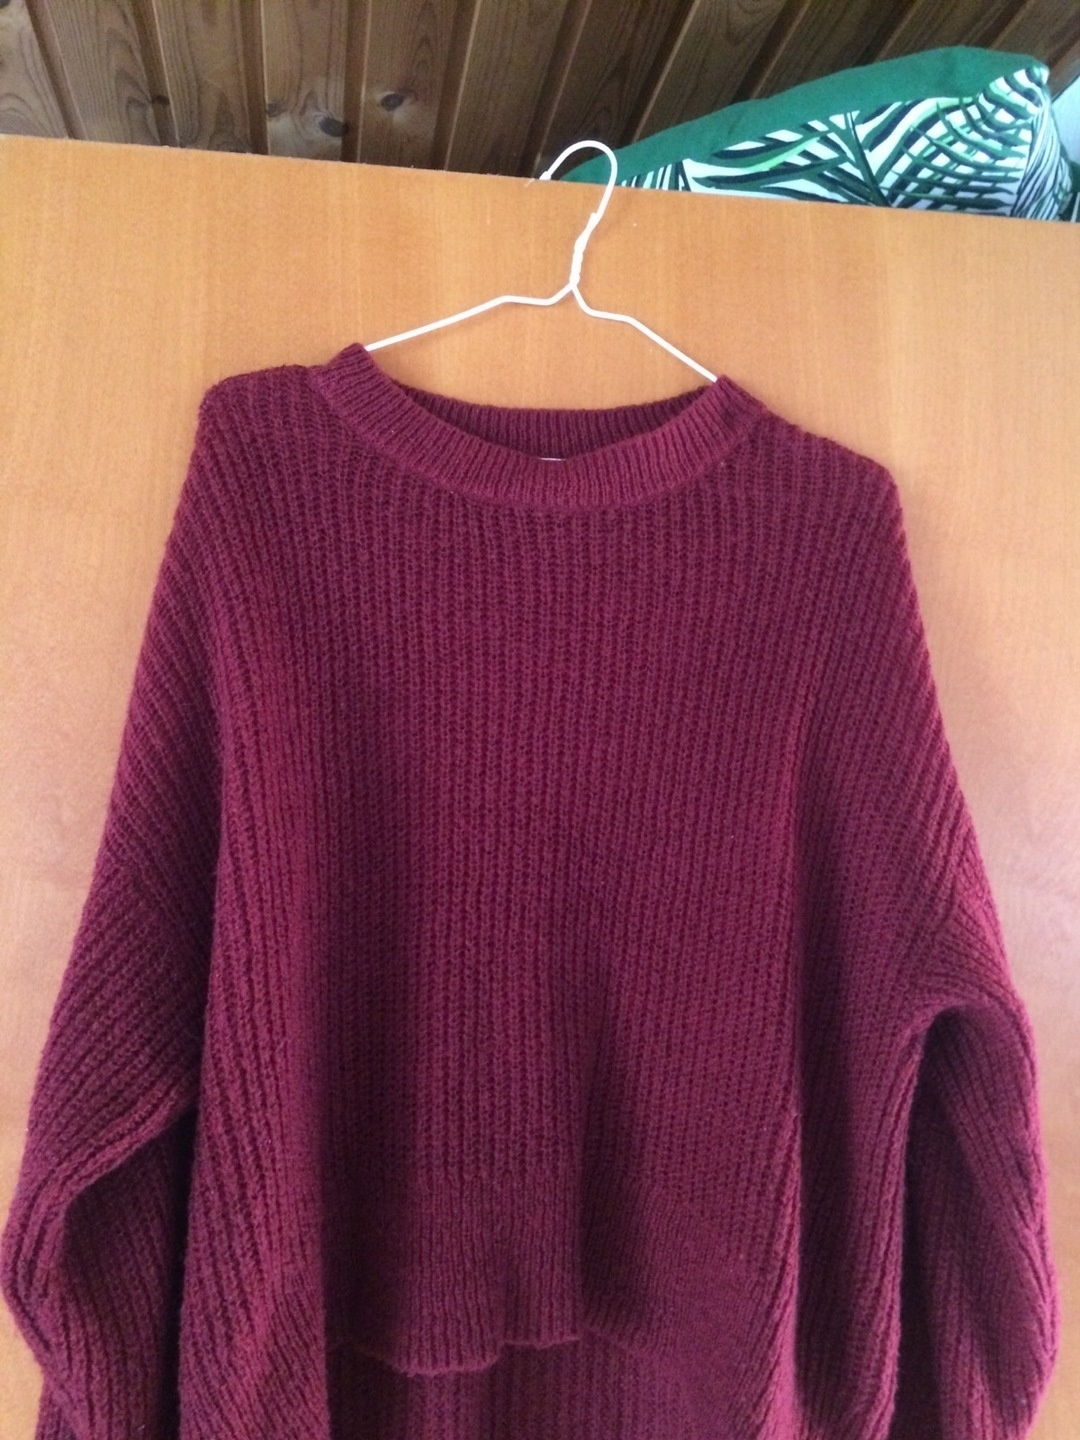 Women's jumpers & cardigans - L.O.G.G. (H&M) photo 1